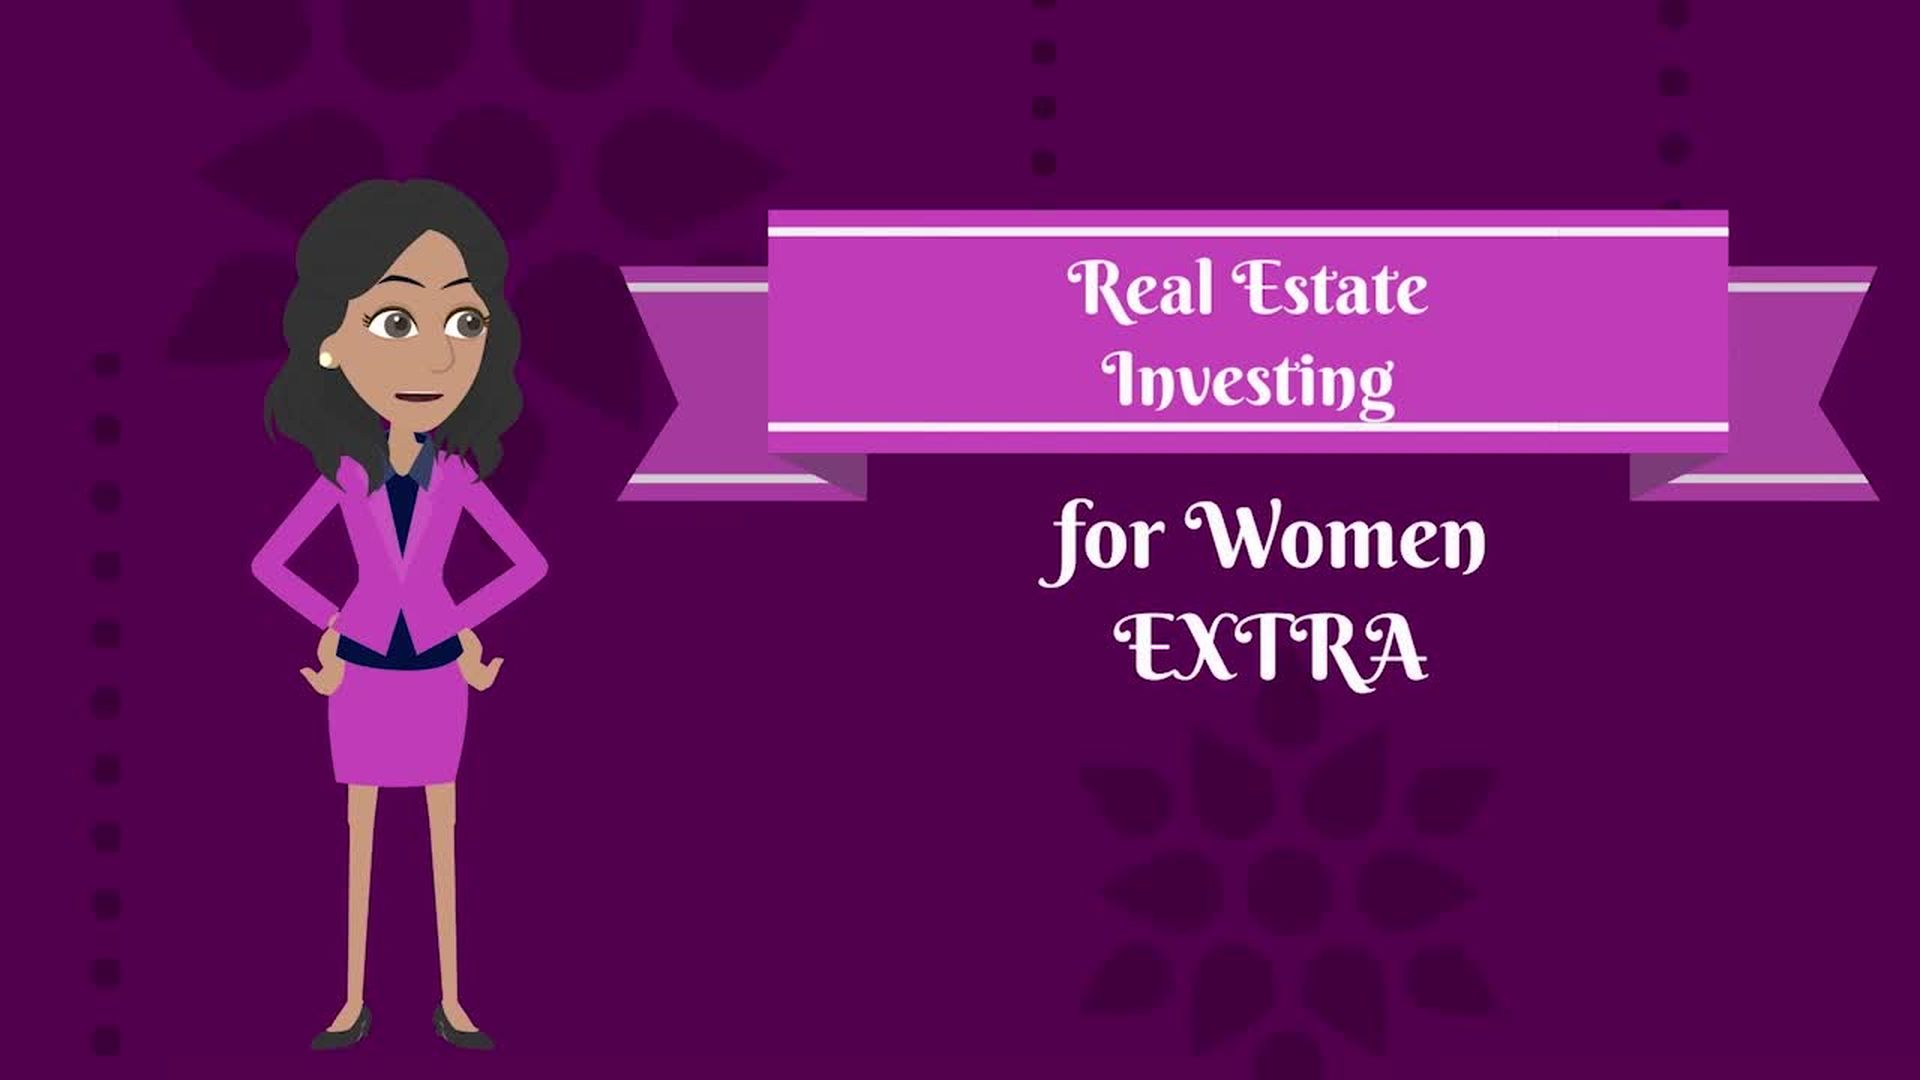 How to Overcome Obstacles to Get Your Deal Done with Phil Capron - REAL ESTATE INVESTING FOR WOMEN EXTRA